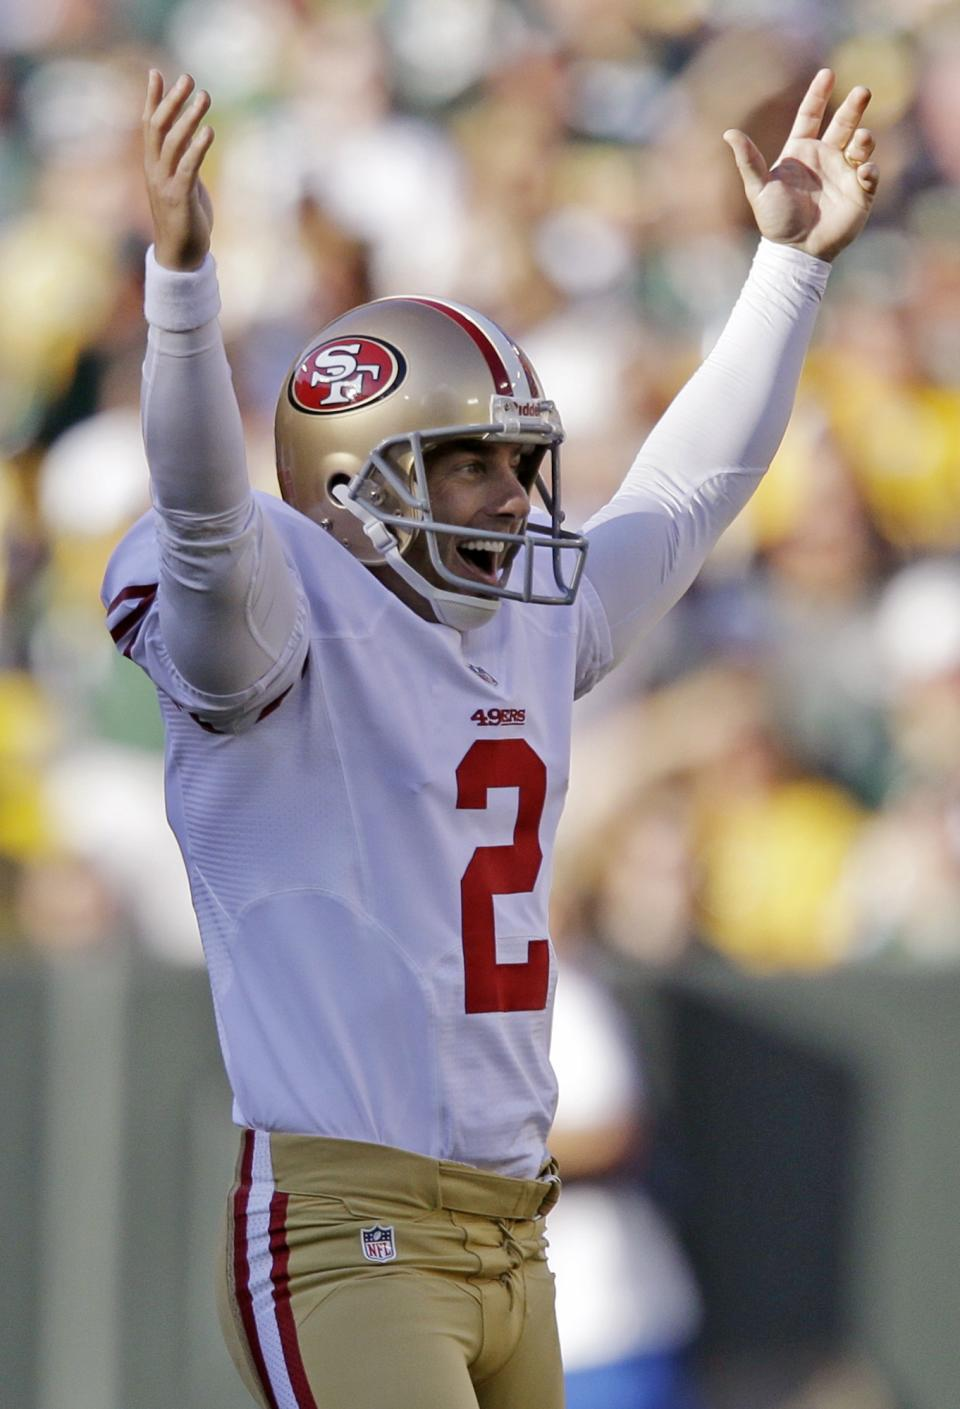 San Francisco 49ers kicker David Akers reacts after kicking a 63-yard field goal during the first half of an NFL football game against the Green Bay Packers Sunday, Sept. 9, 2012, in Green Bay, Wis. Akers tied an NFL record with the field goal. (AP Photo/Jeffrey Phelps)